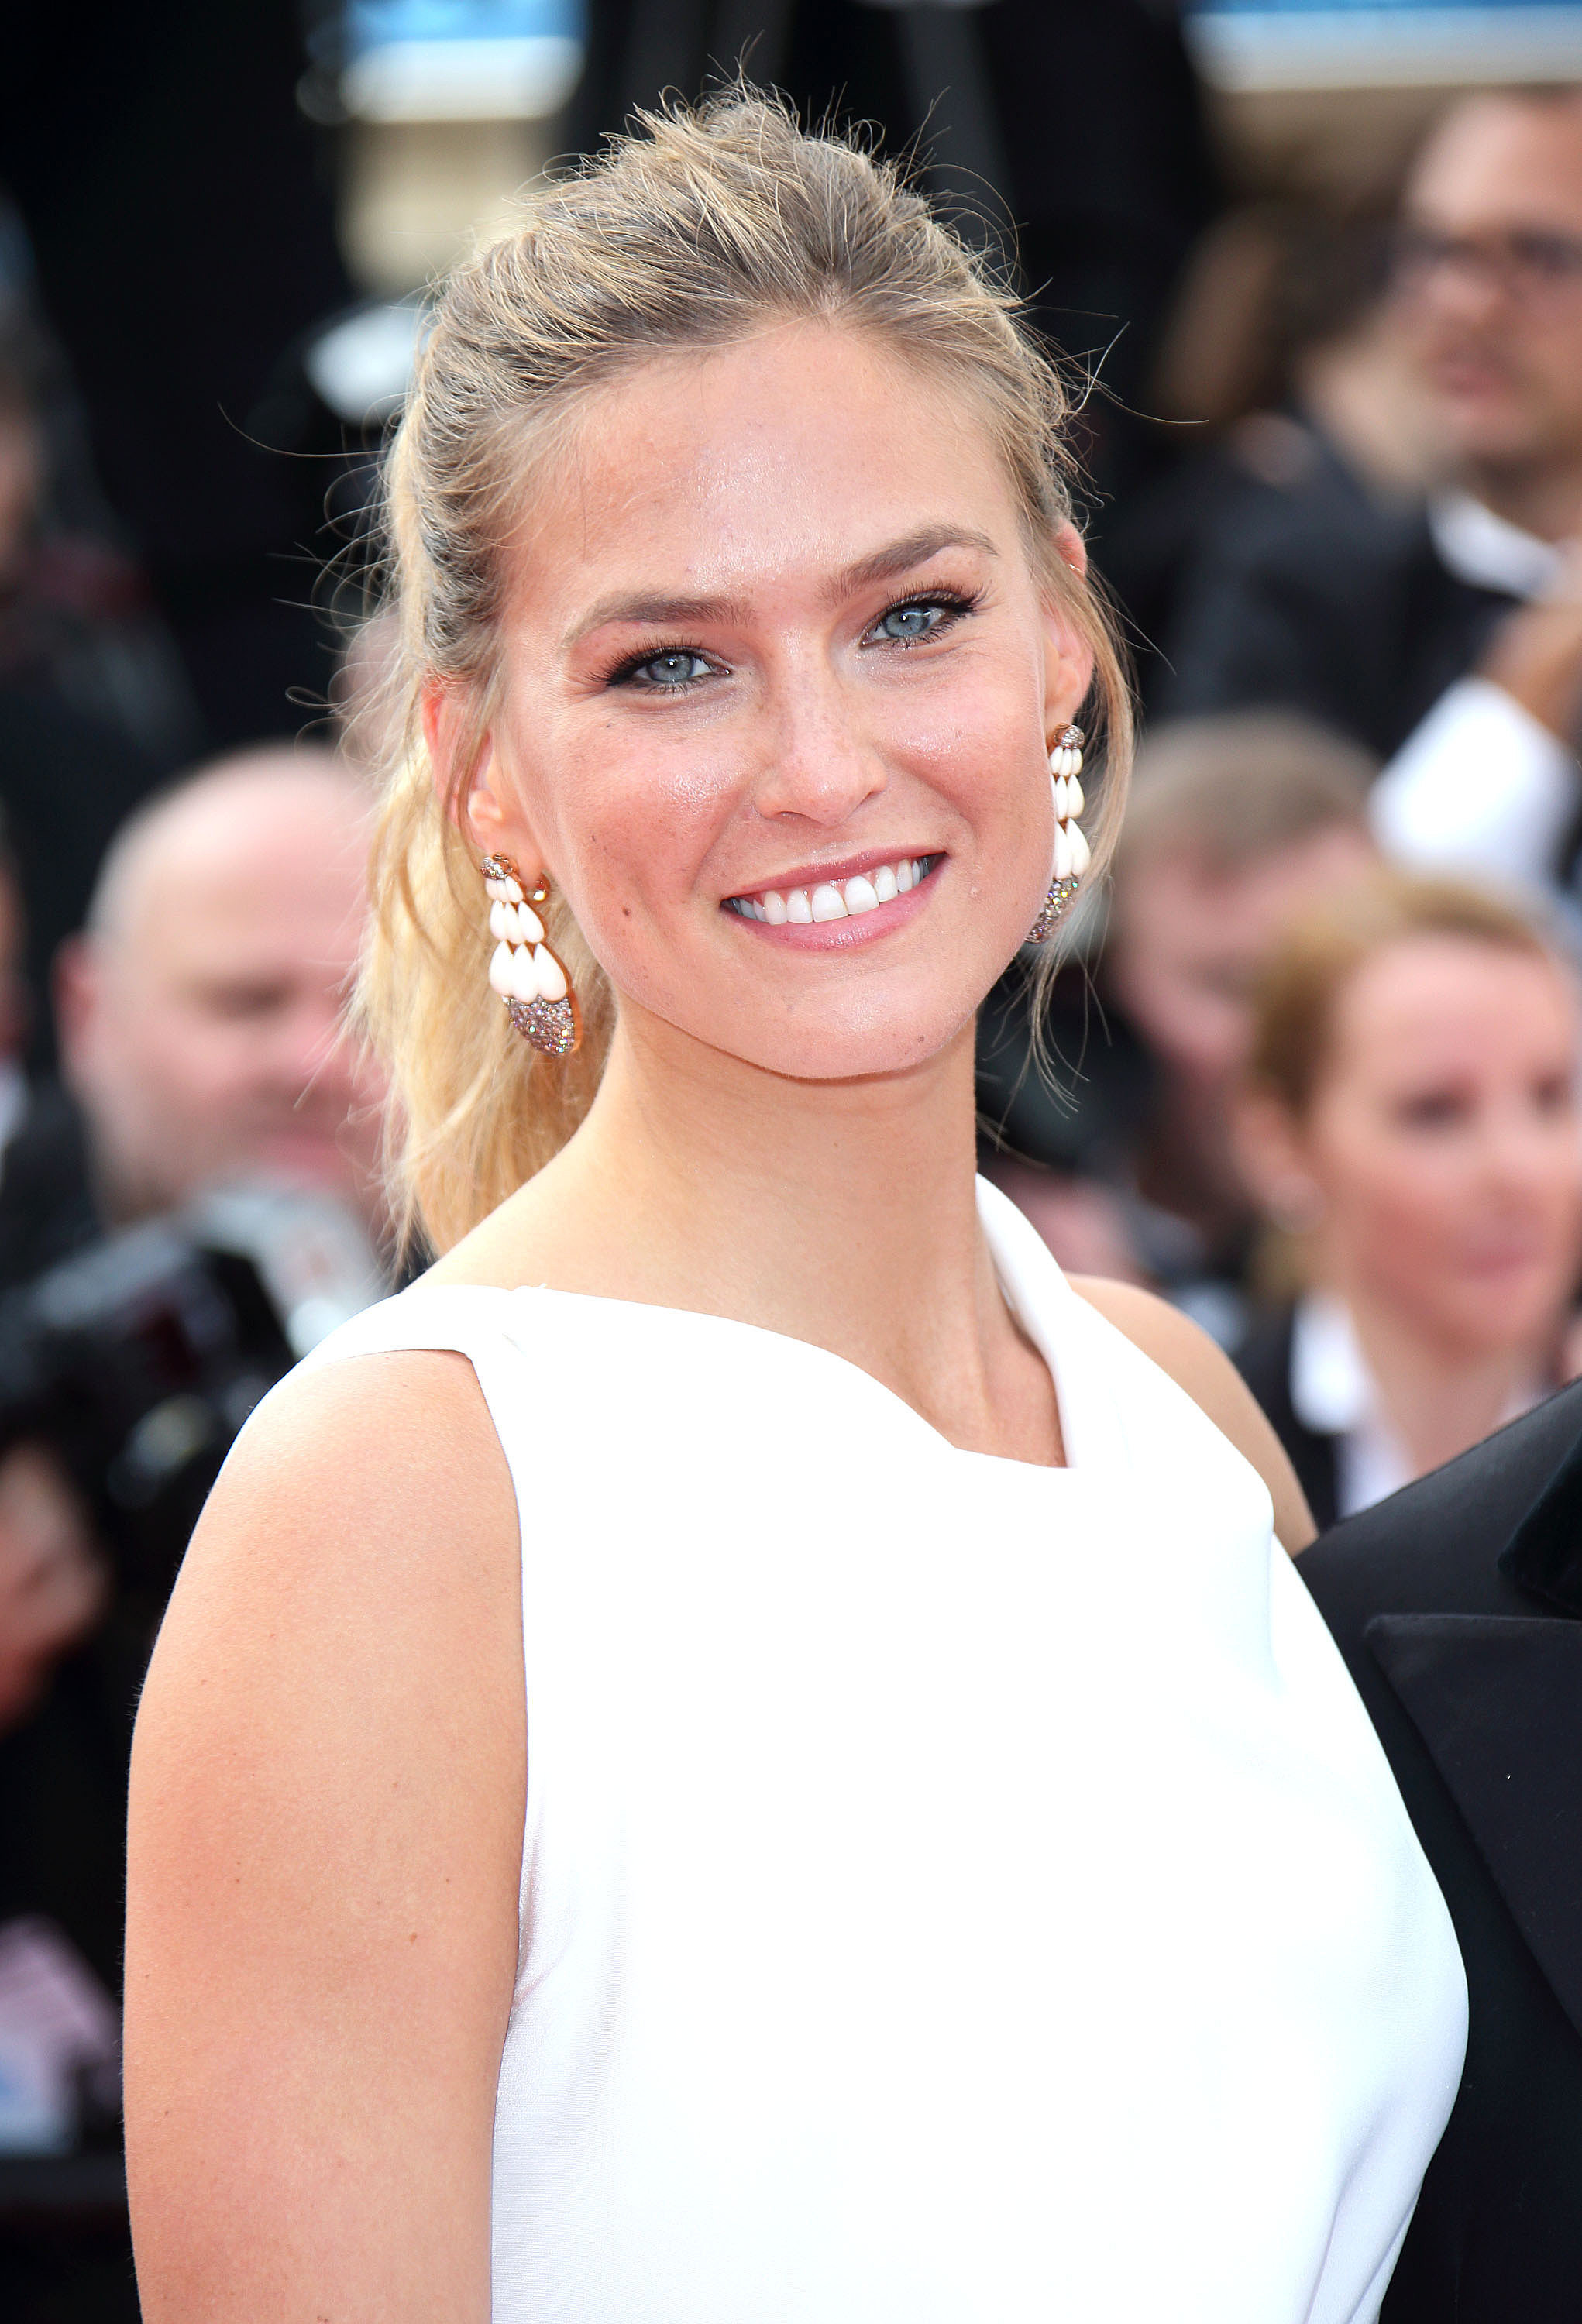 Bar Refaeli | All the Gorgeous Stars at the Cannes Film Festival ... Bar Refaeli